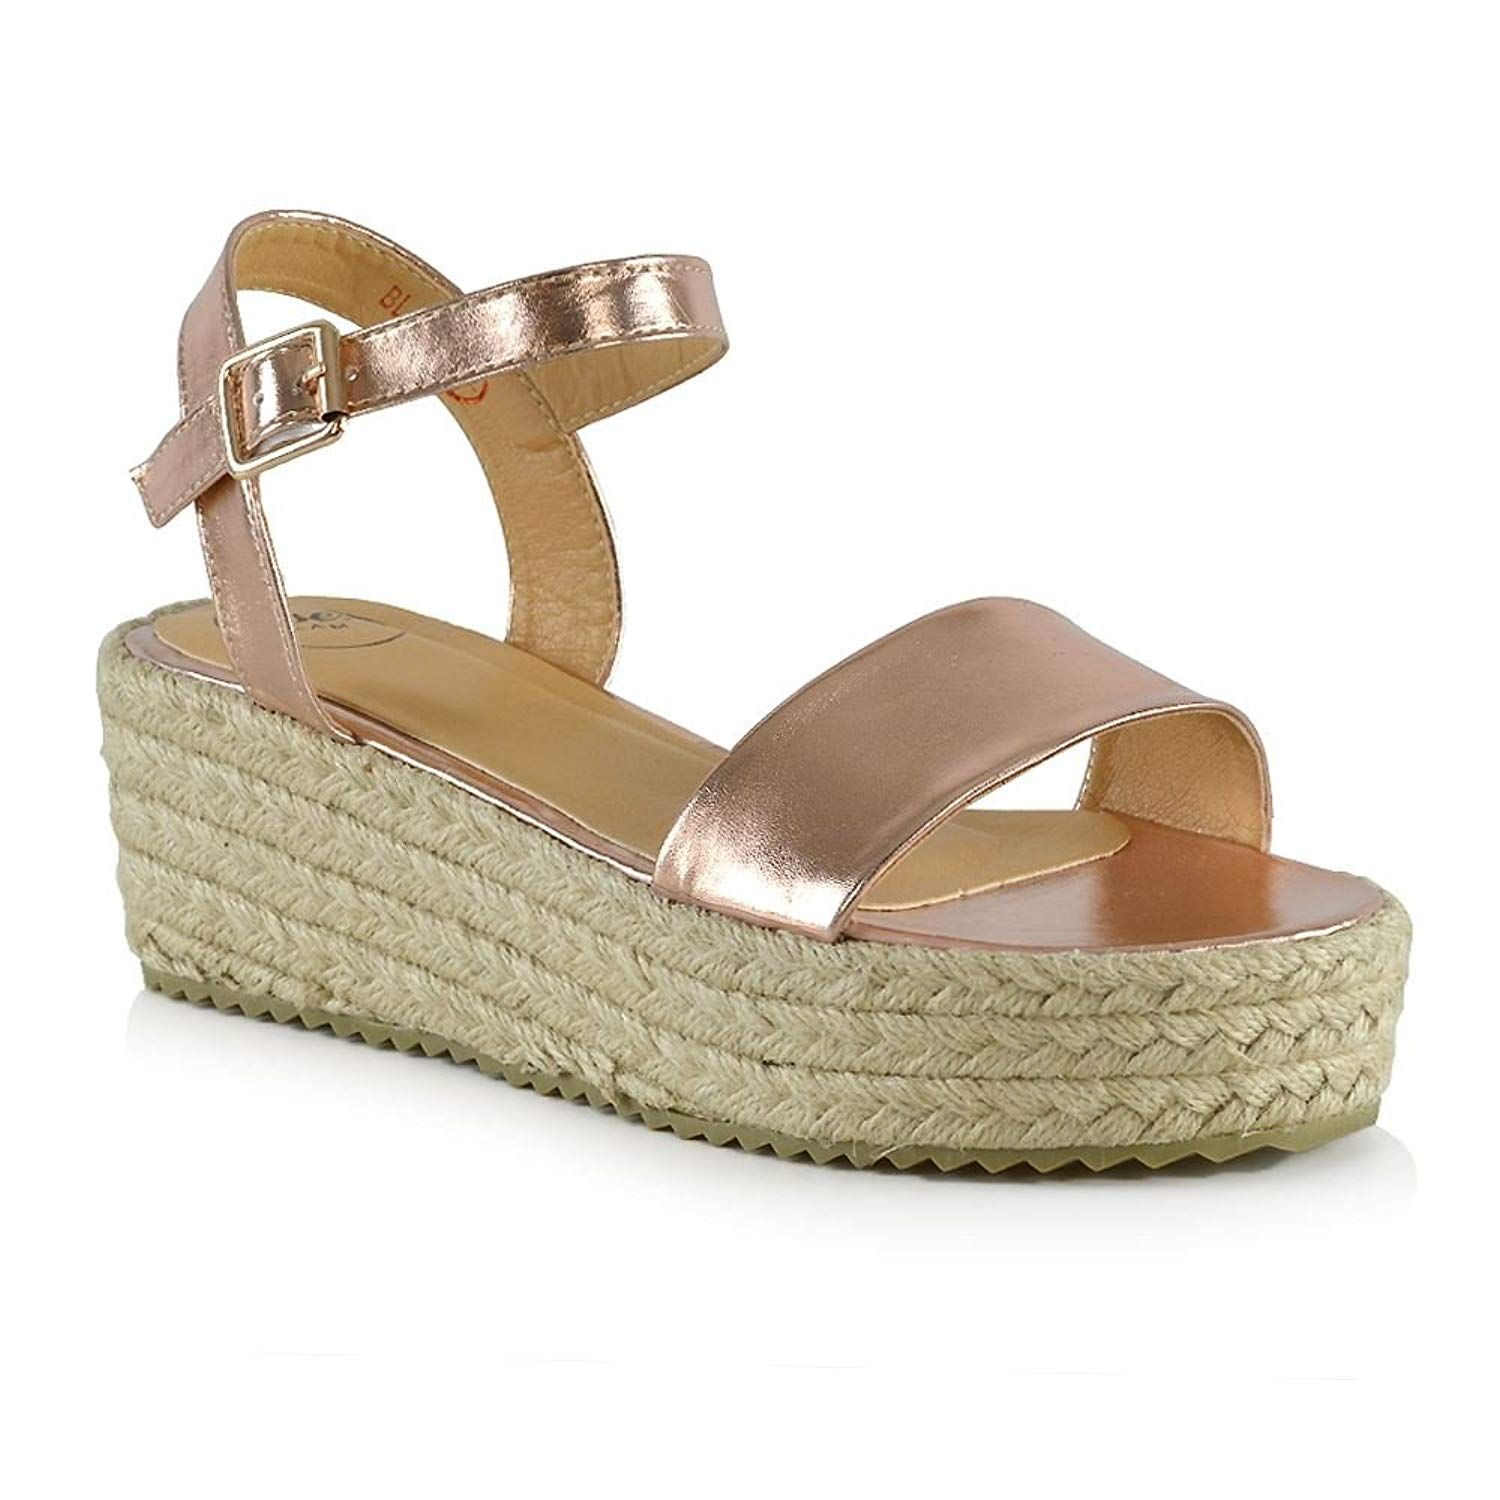 77d277f02ec ESSEX GLAM Womens Platform Sandals Flat Wedge Ankle Strap Espadrilles Shoes